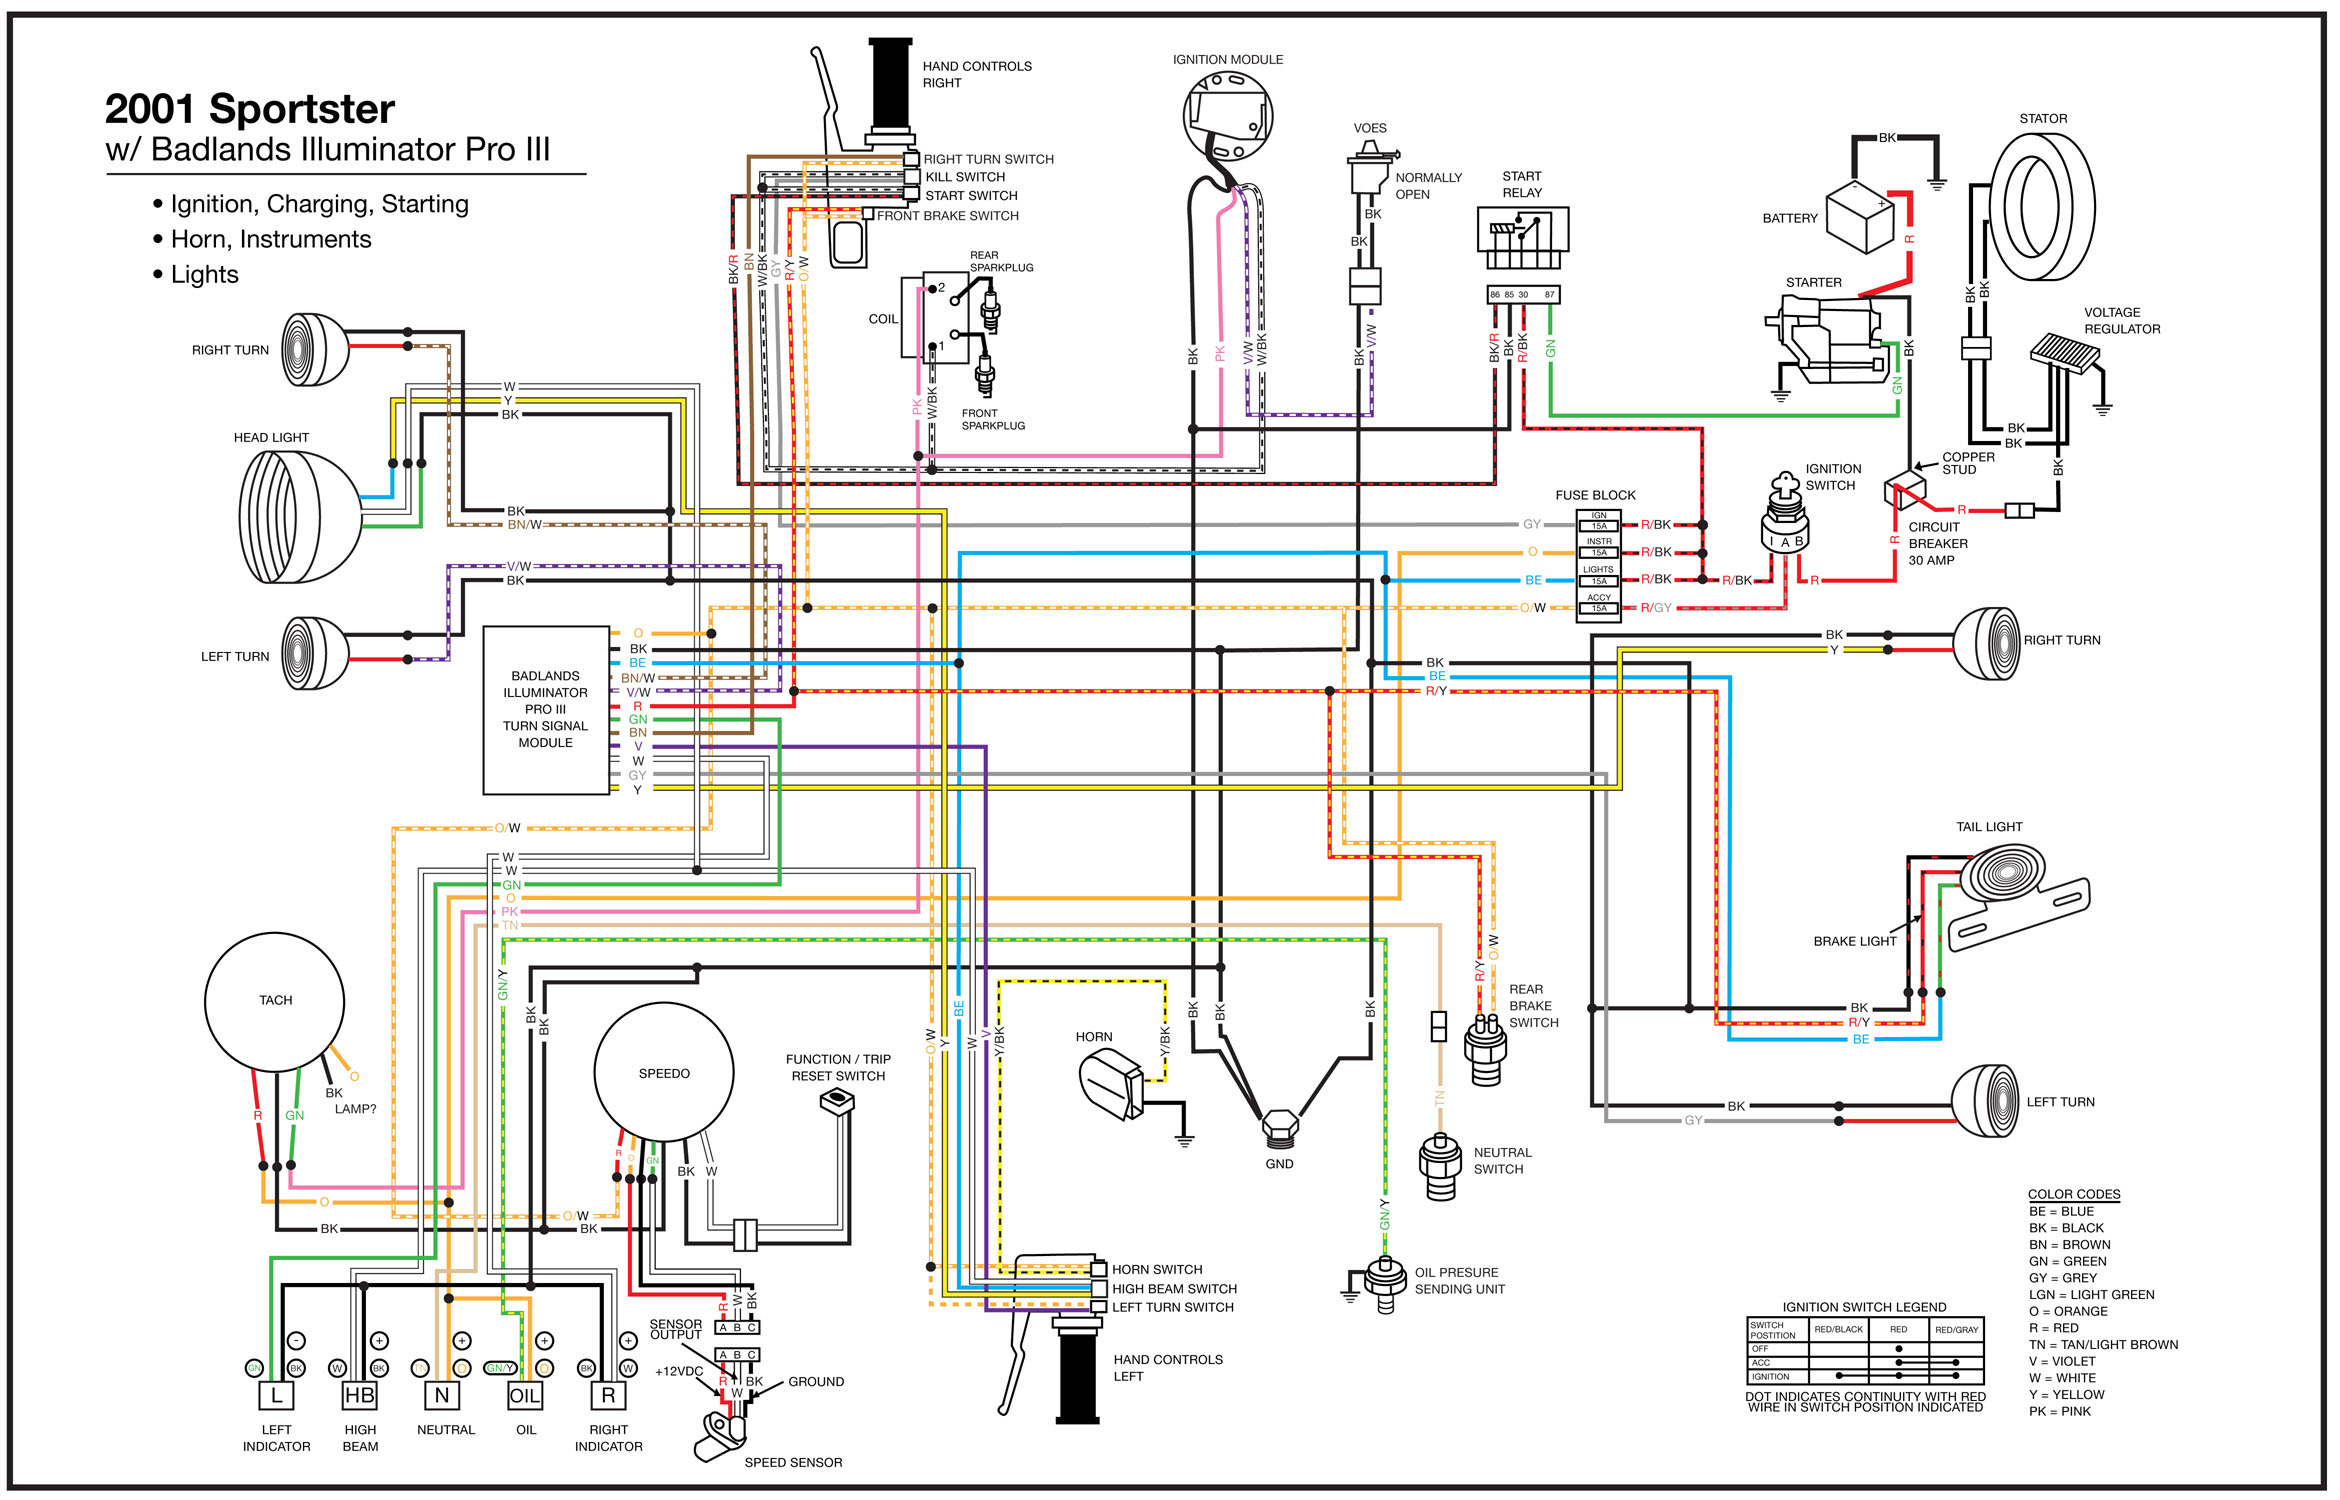 99 Softail Standard Wiring Diagram - Car Fuse Box Layout -  yamaha-phazer.yenpancane.jeanjaures37.fr | 99 Softail Standard Wiring Diagram |  | Wiring Diagram Resource